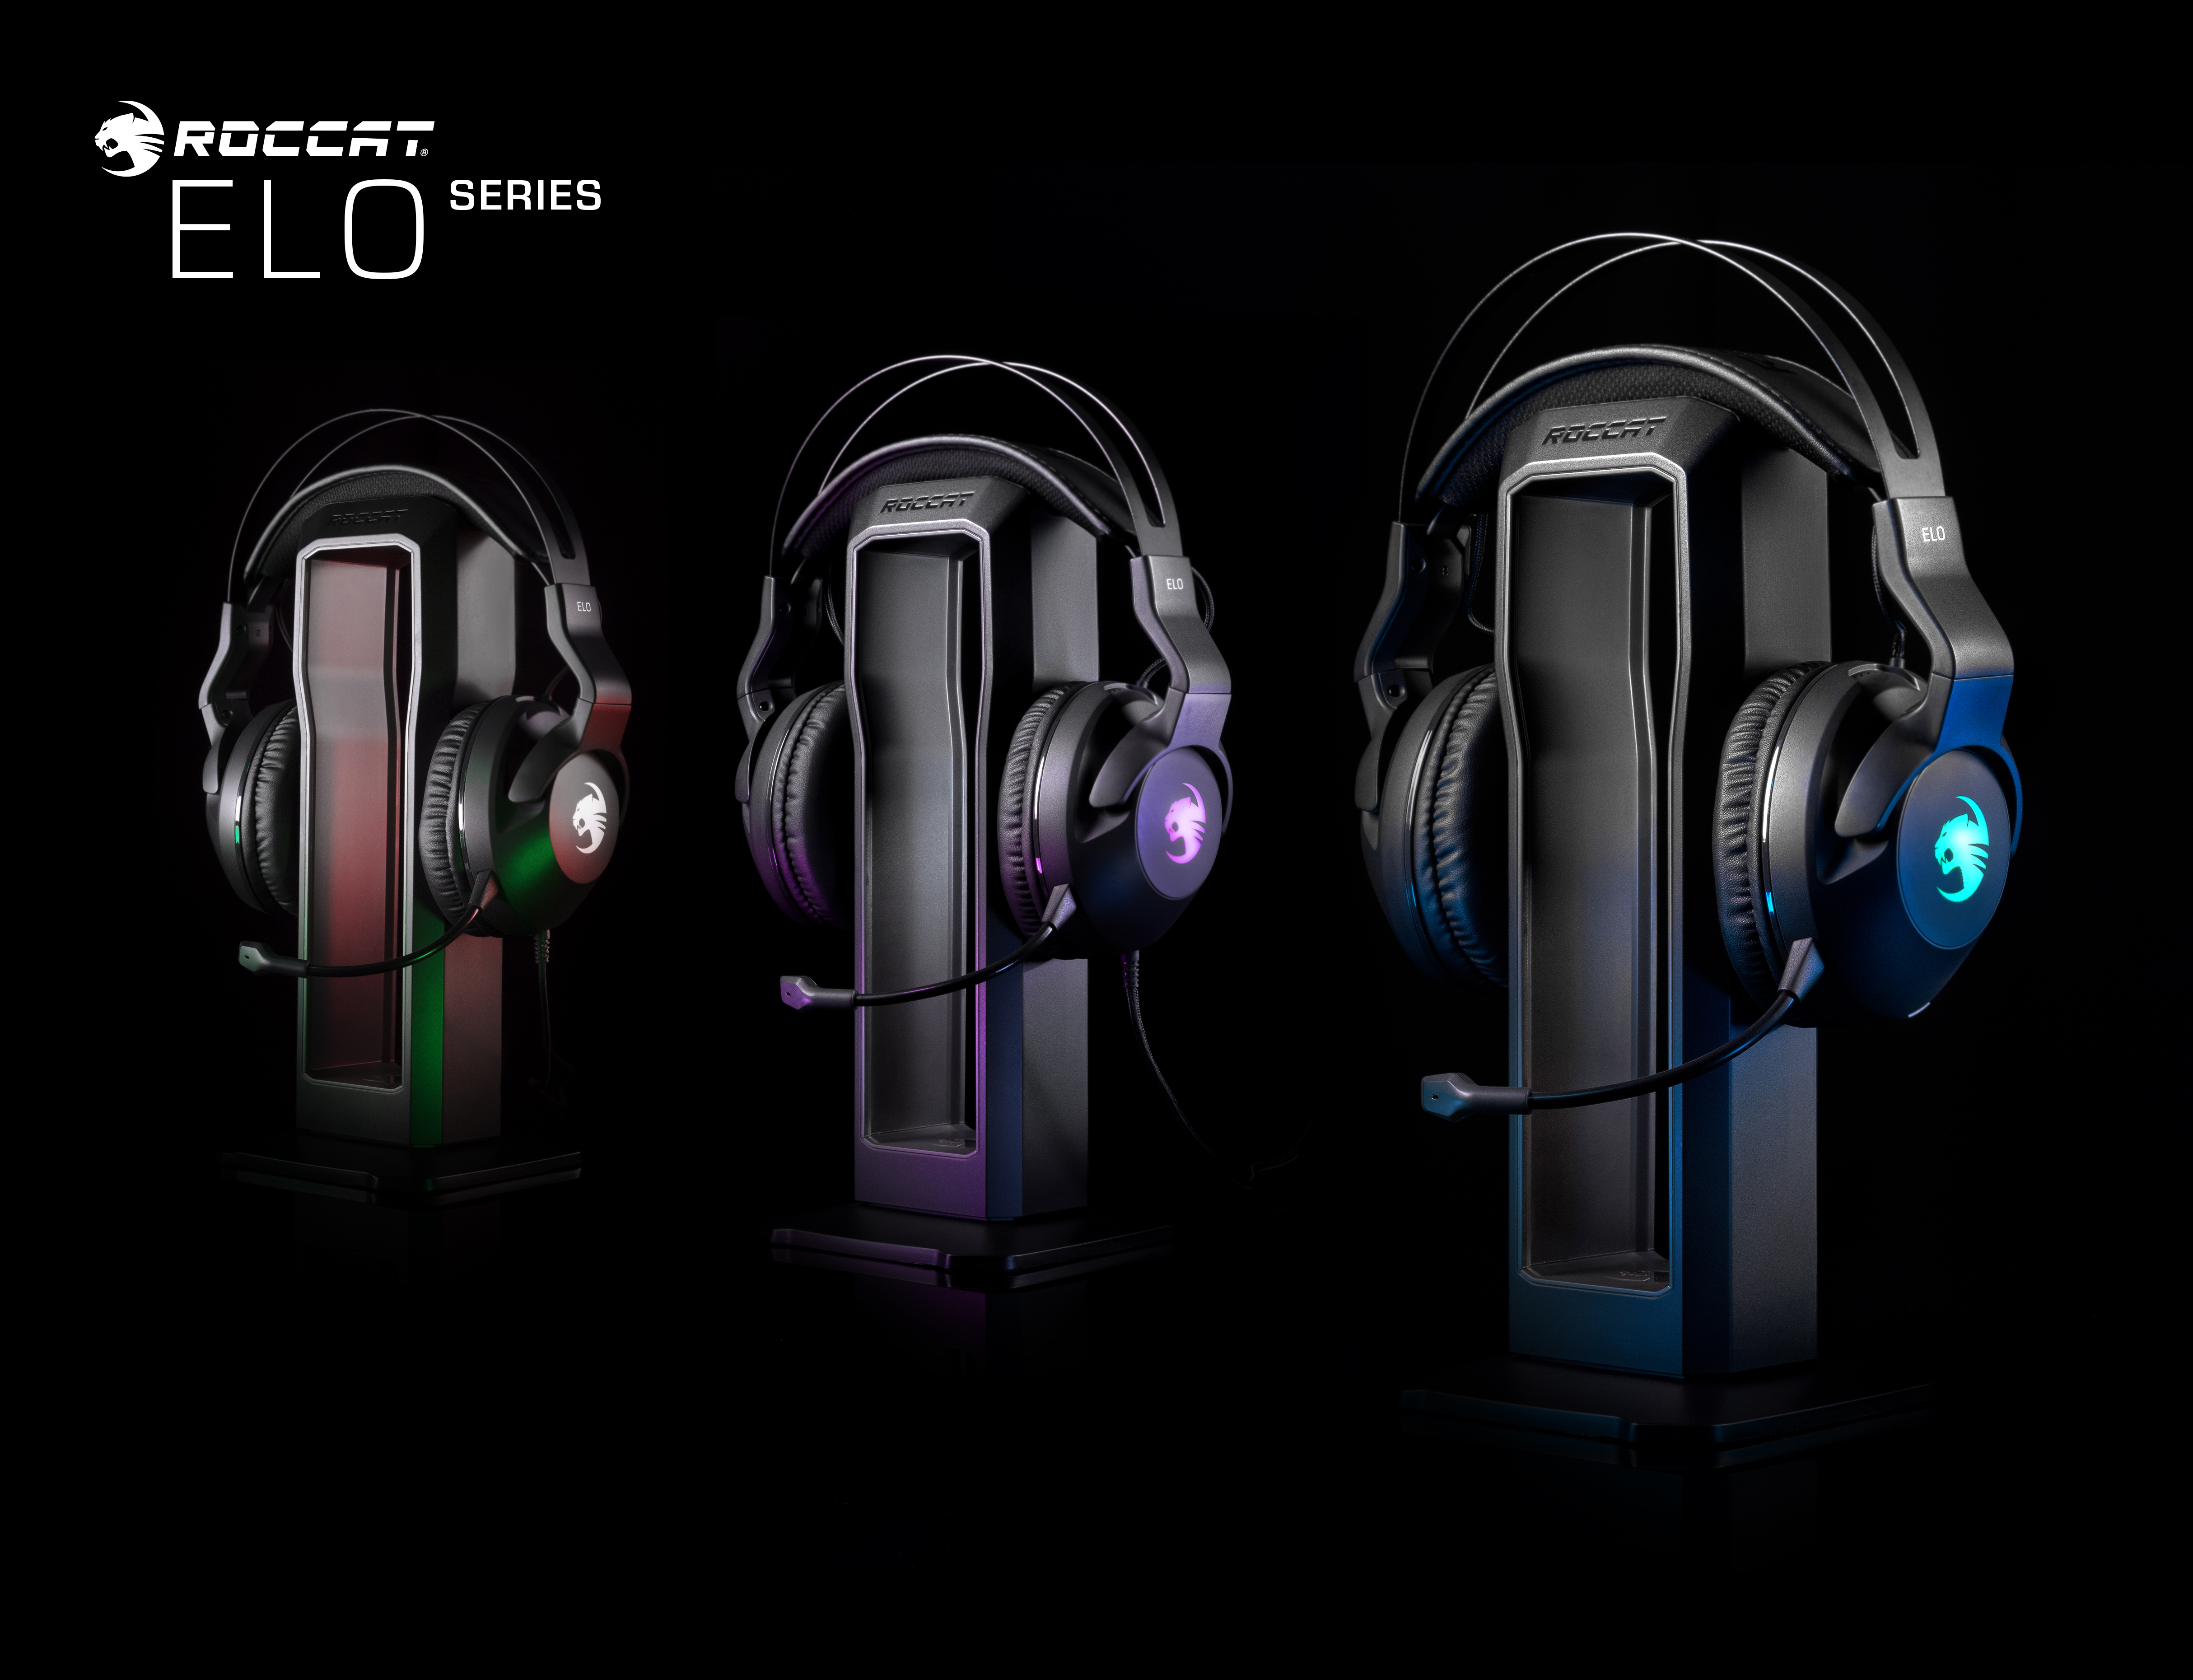 ROCCAT's ELO gaming headsets are an acoustic treat